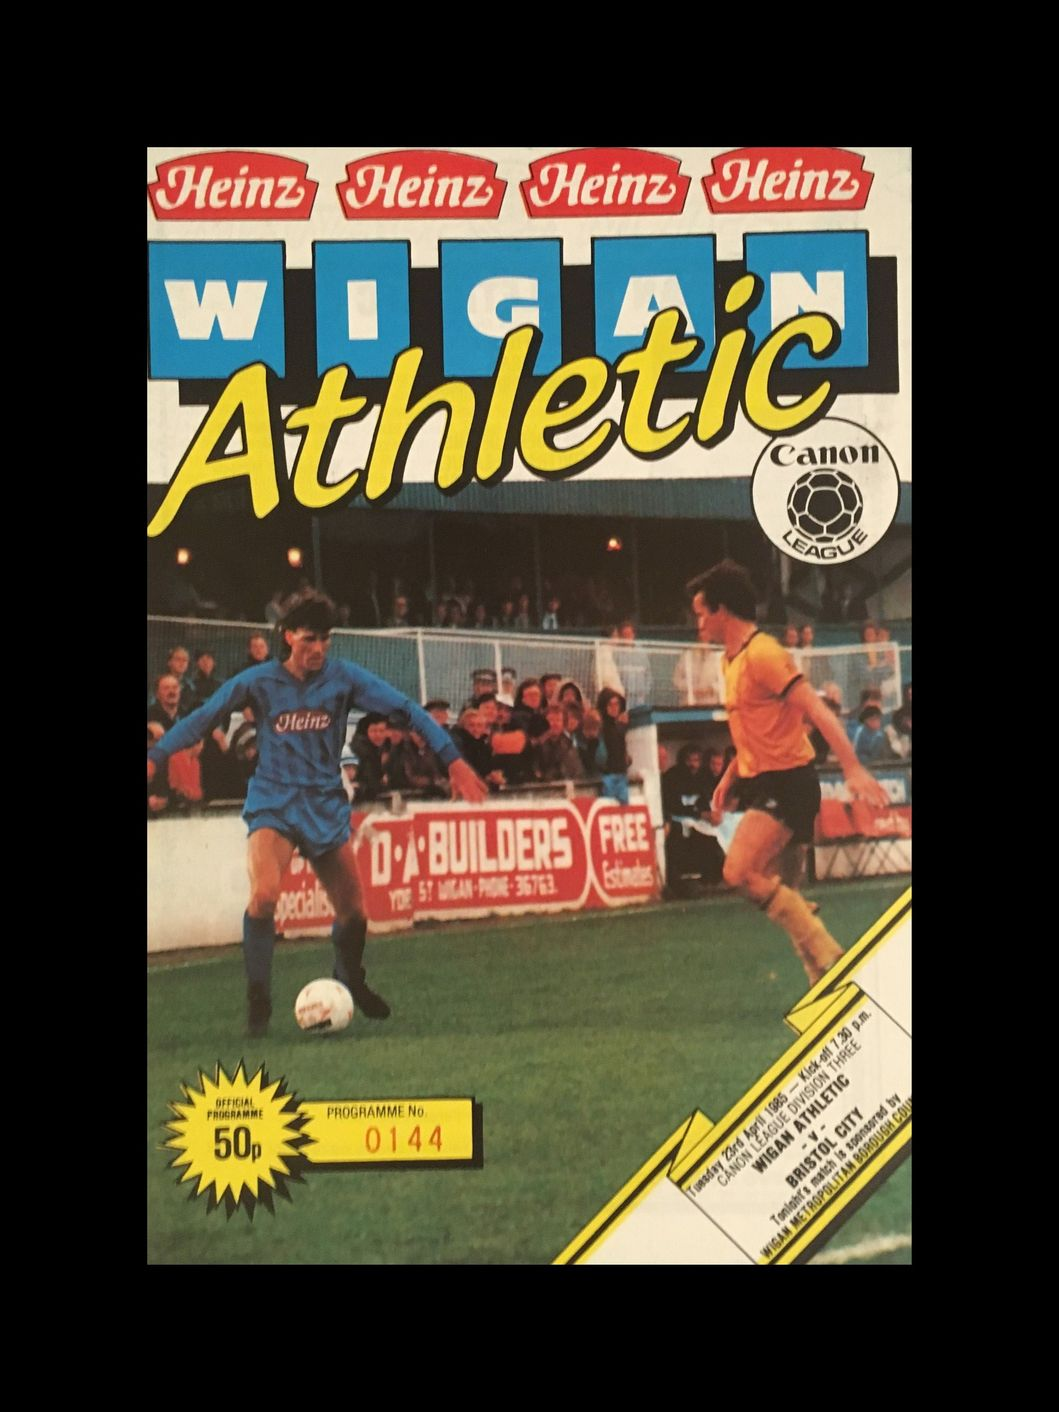 Wigan Athletic v Bristol City 23-04-85 Programme